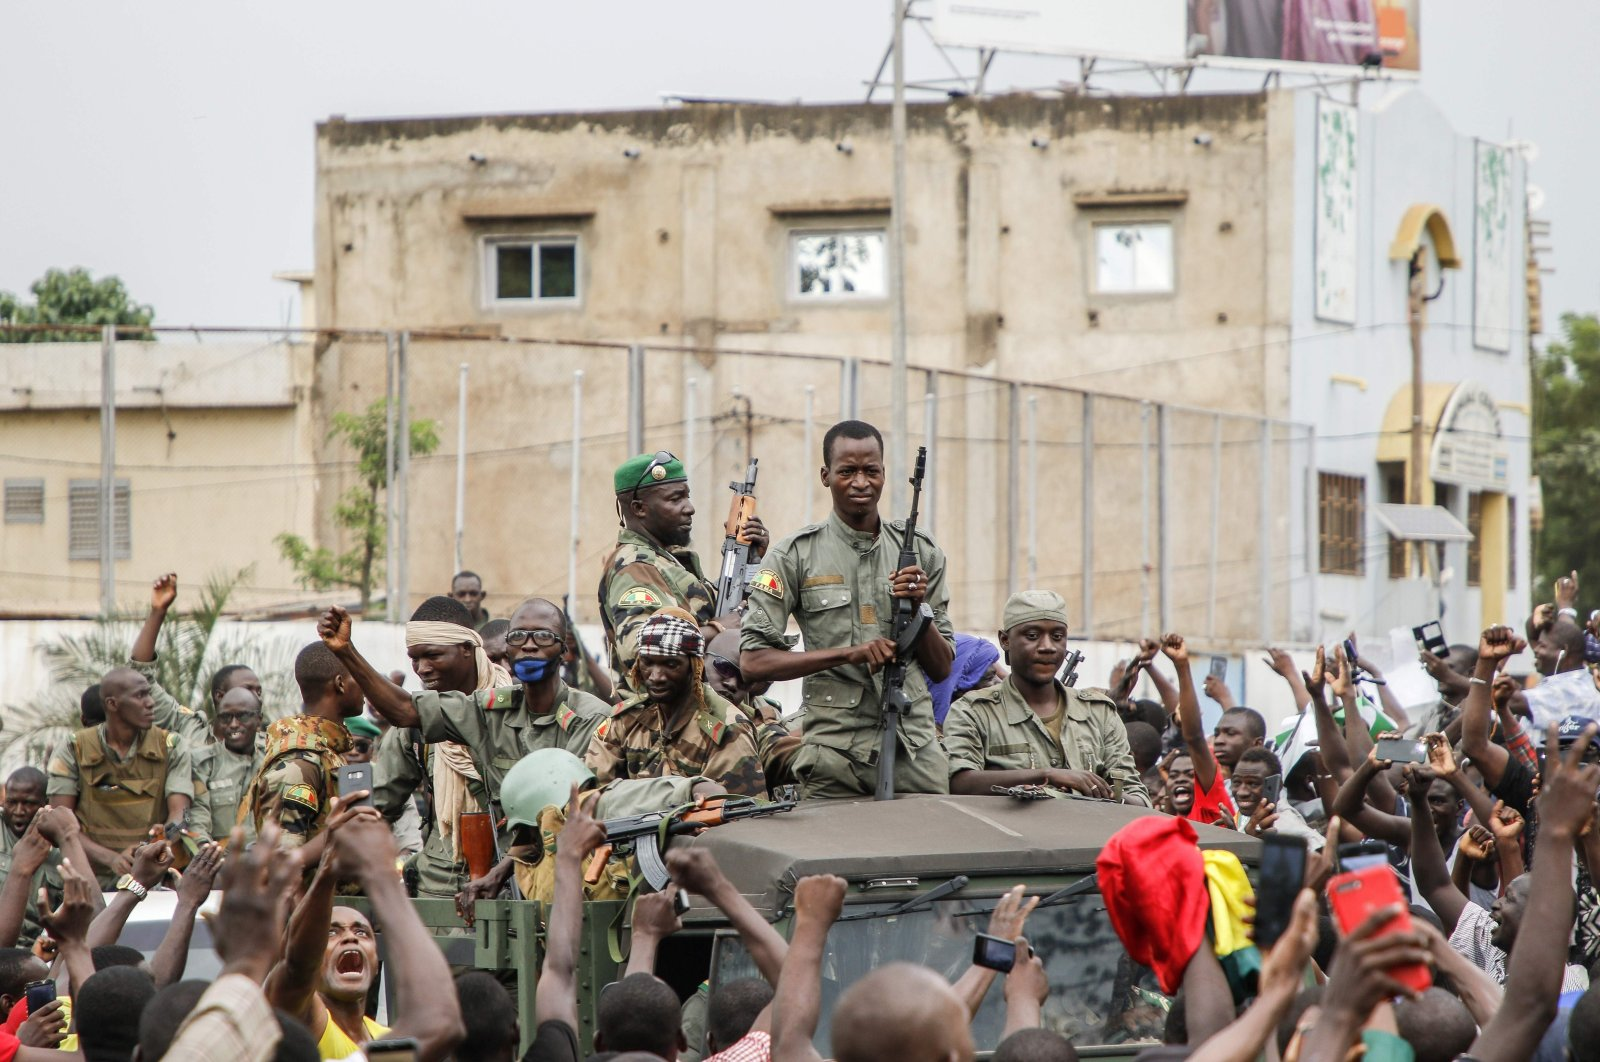 Armed members are celebrated by the population as they parade at Independence Square, Bamako, Mali, Aug. 18, 2020. (AFP Photo)